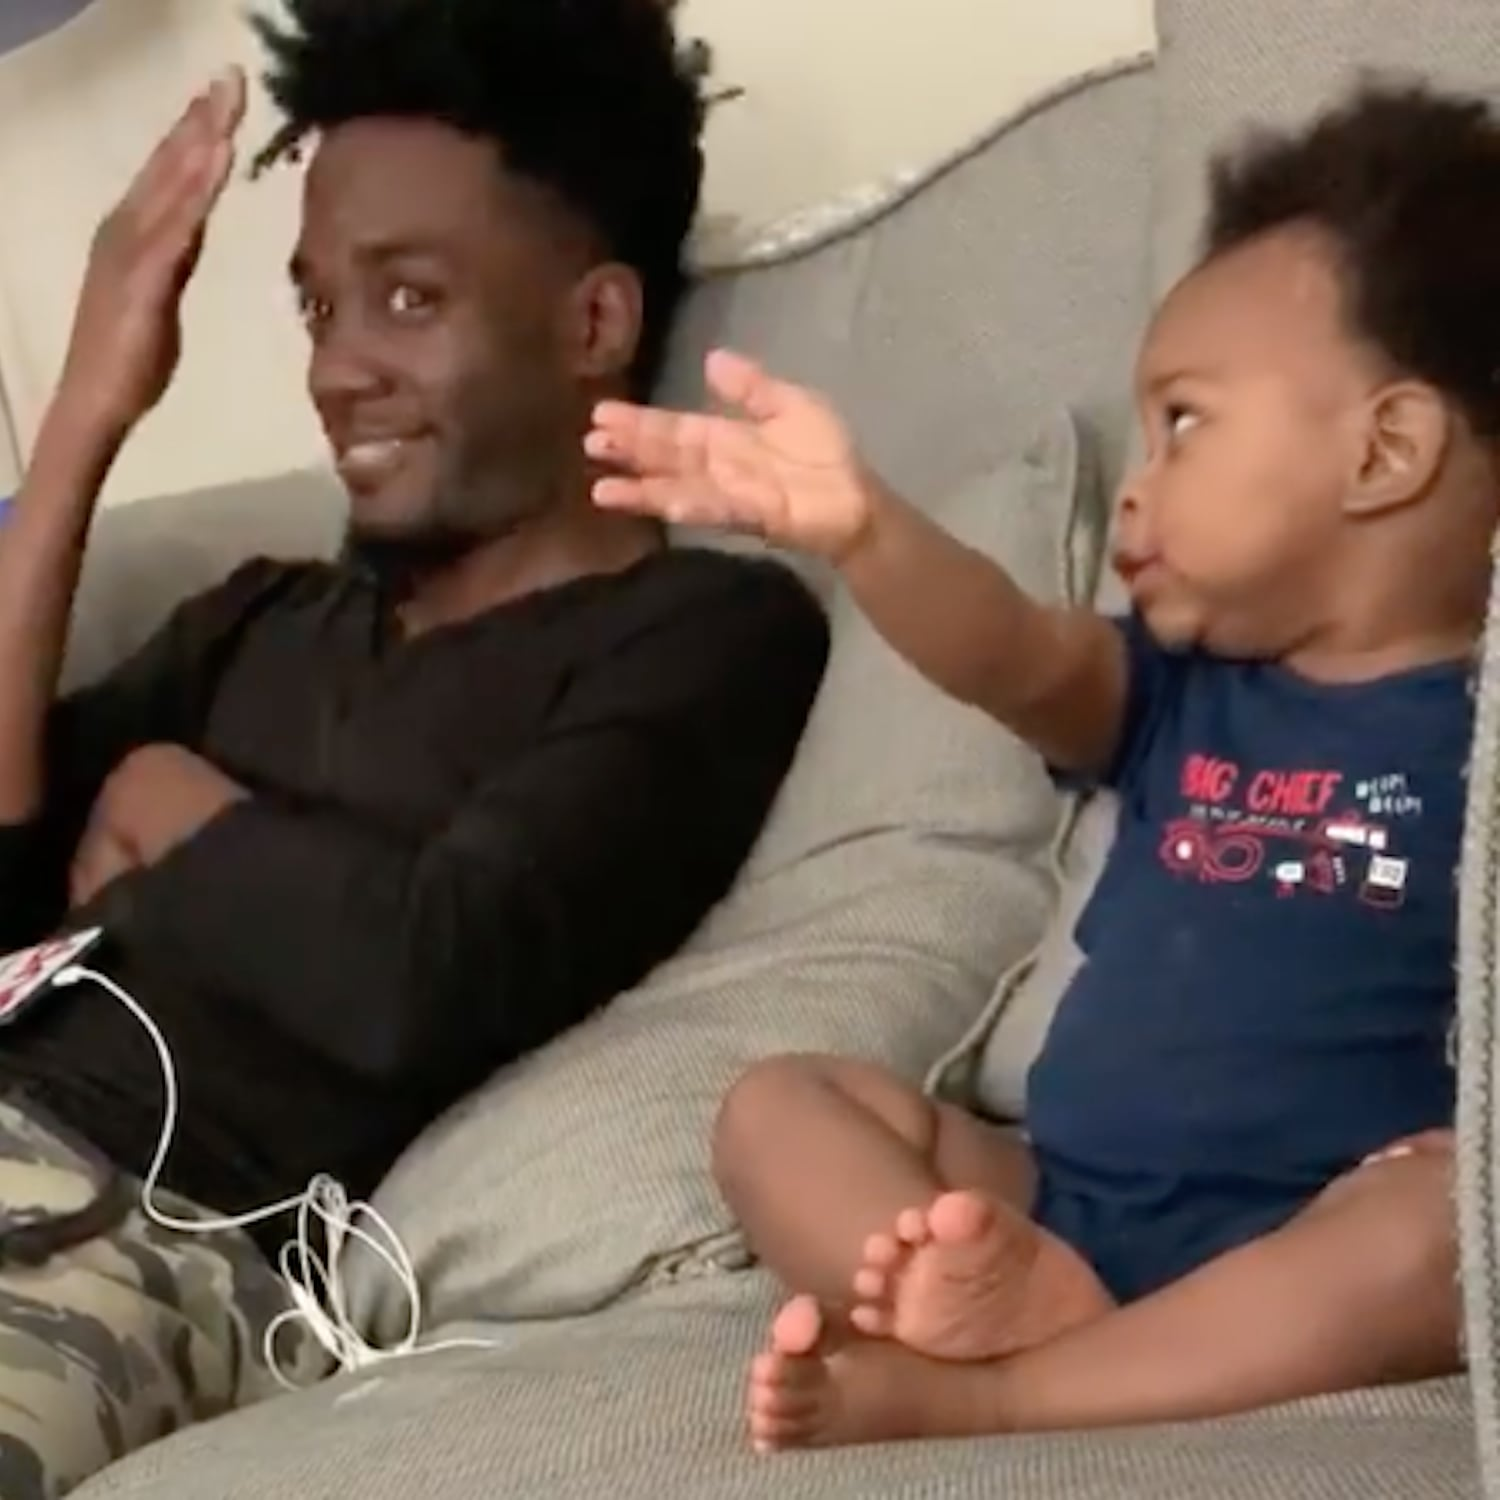 Viral Video of Baby Boy Talking to His Dad | POPSUGAR UK Parenting